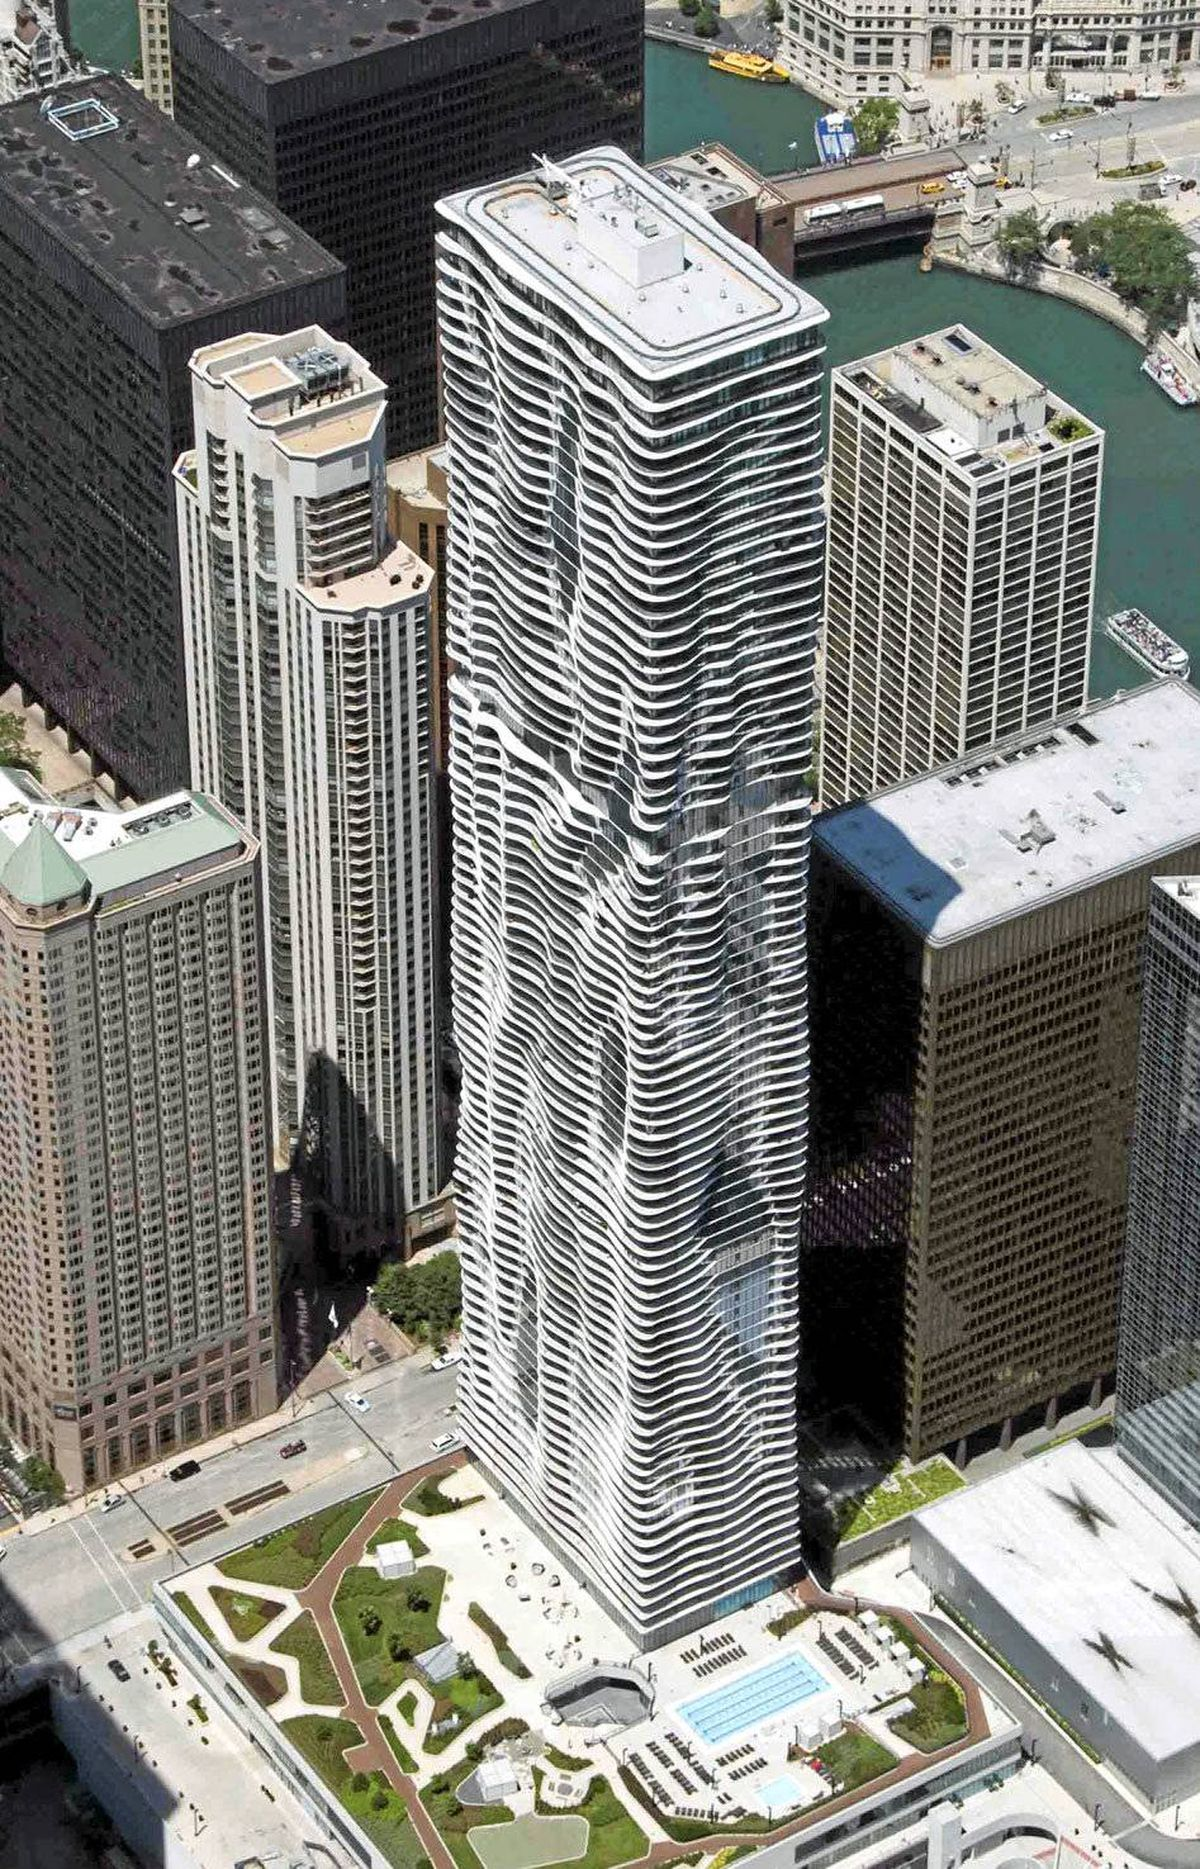 The 82-storey Aqua Tower in Chicago has won rave reviews for its sleek, curvy look, but has come under fire for its environmental downsides: Its uninsulated concrete slab floors sweep seamlessly from Aqua's interiors to its exterior balconies, allowing for heat escape.